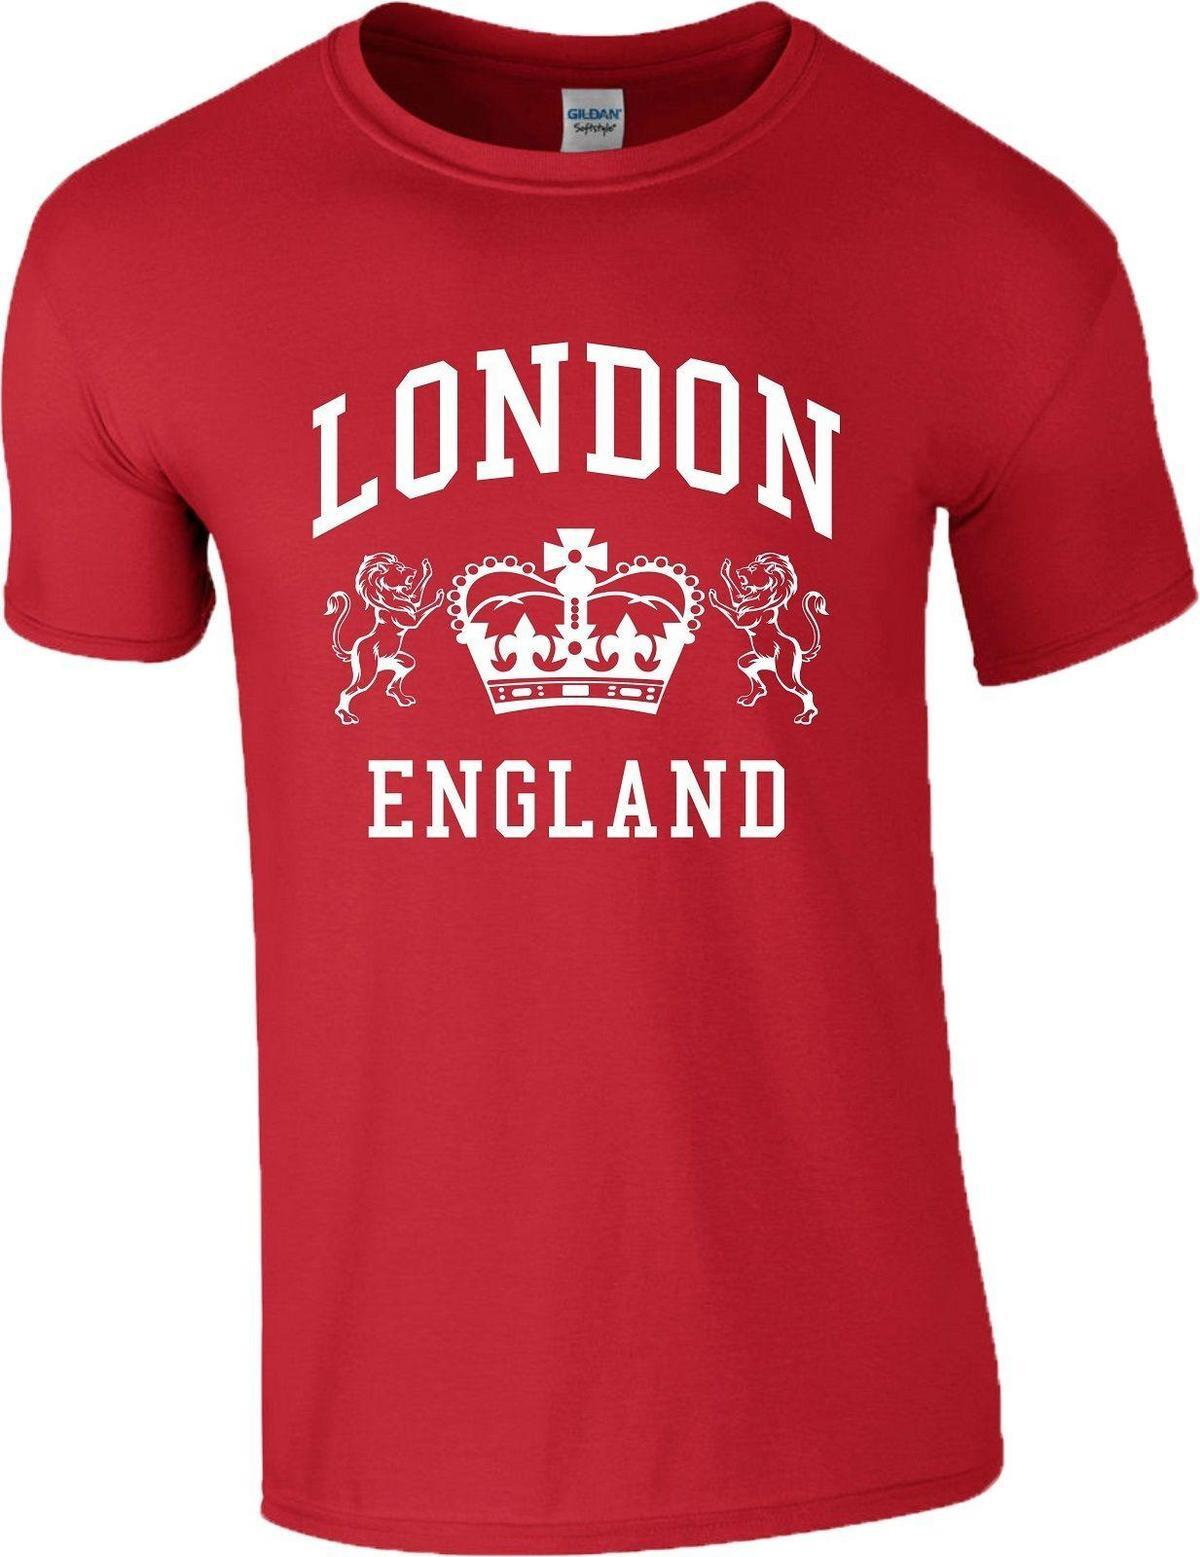 London England T Shirt Novelty Souvenir Tourist Holiday Birthday Gift Men Ladies Order Shirts Quality From Yuxin004 138